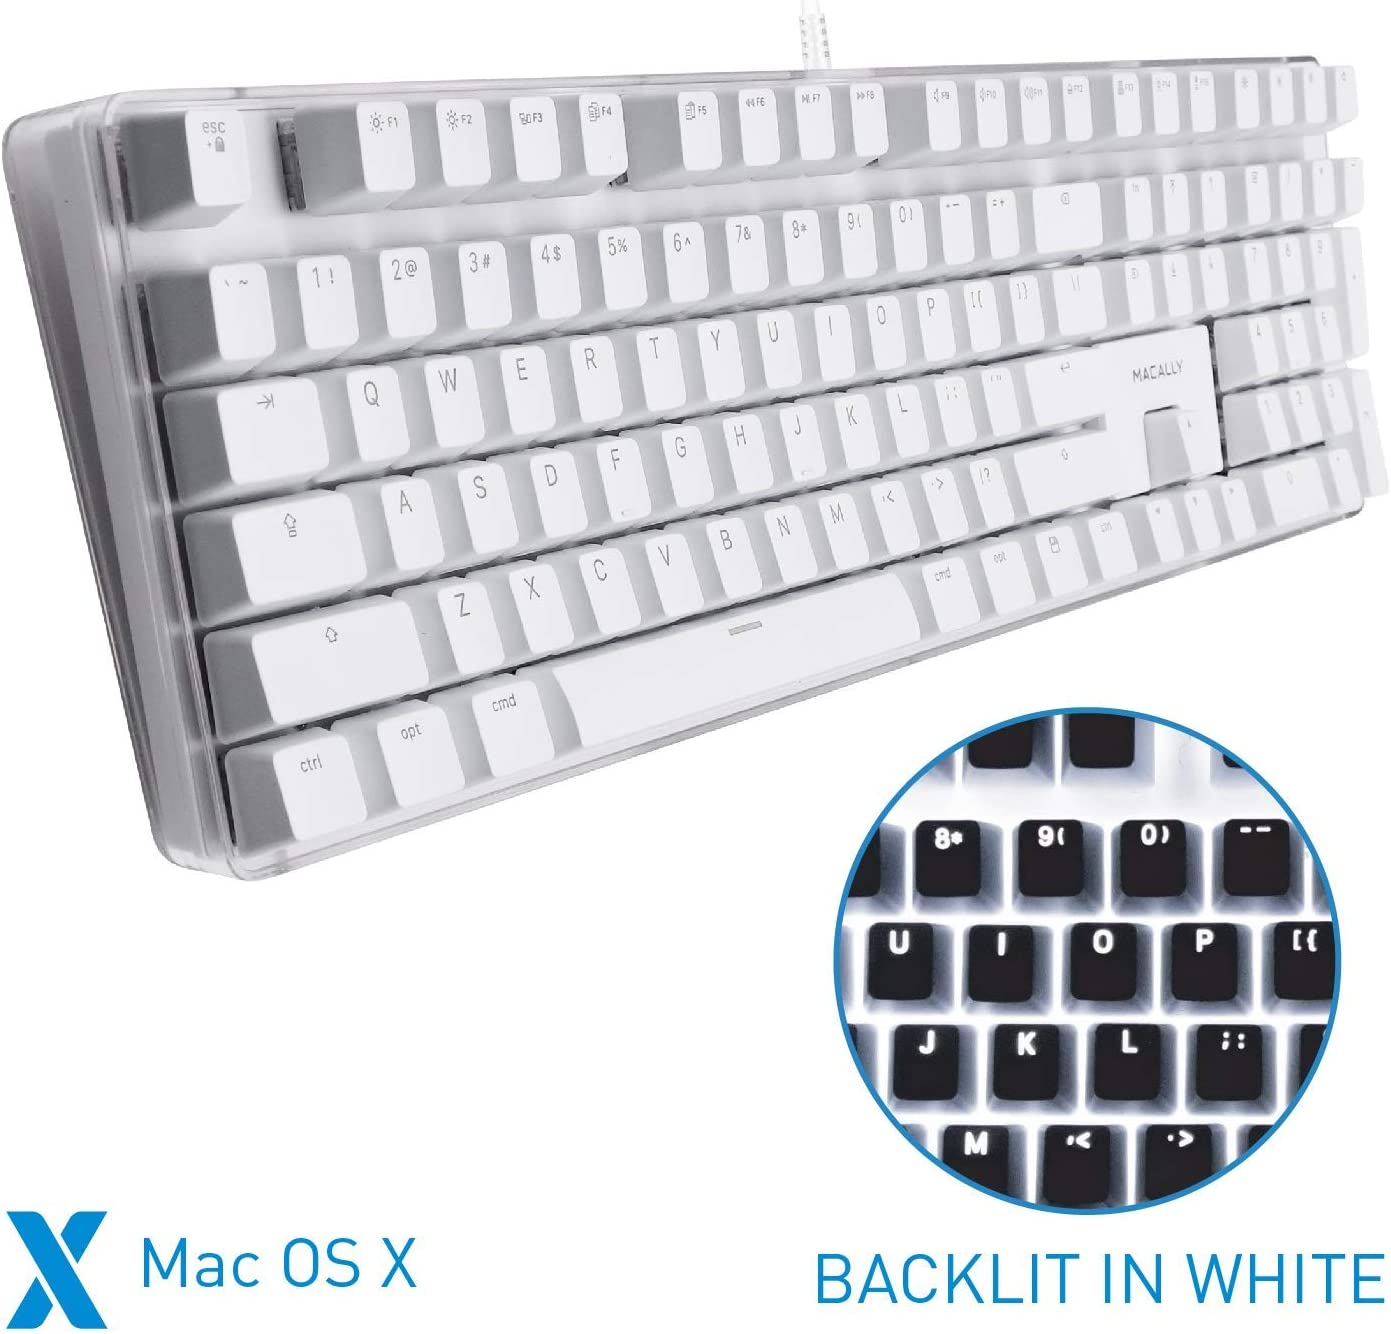 Macally Backlit Mechanical Keyboard for Mac - for Apple Mac Mini, Mac Pro, iMac, iMac Pro, MacBook Pro/Air - Full Size Mac Mechanical Keyboard with Brown Switches - USB Wired and Adjustable Backlit